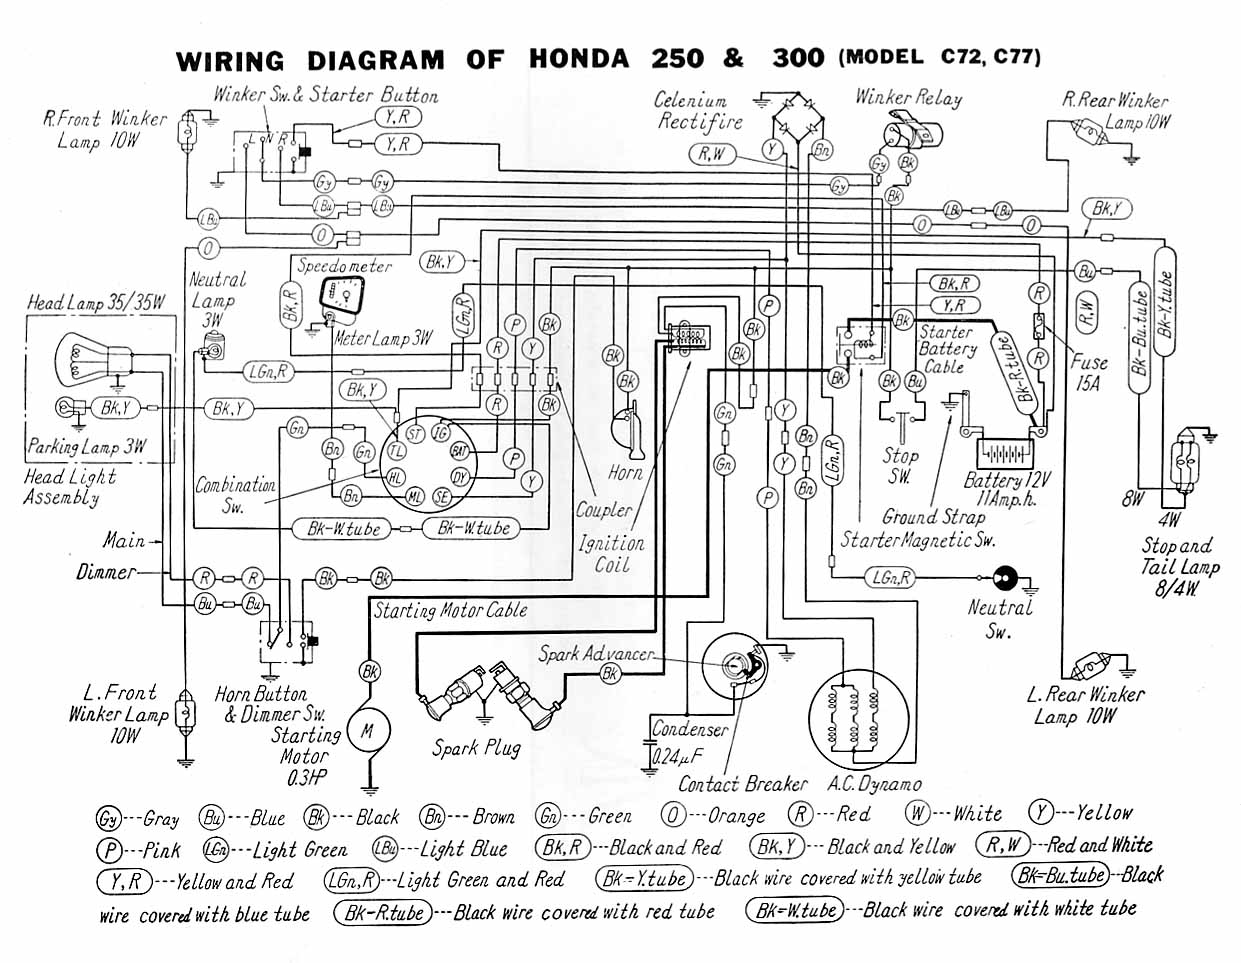 C77 wiring diagrams